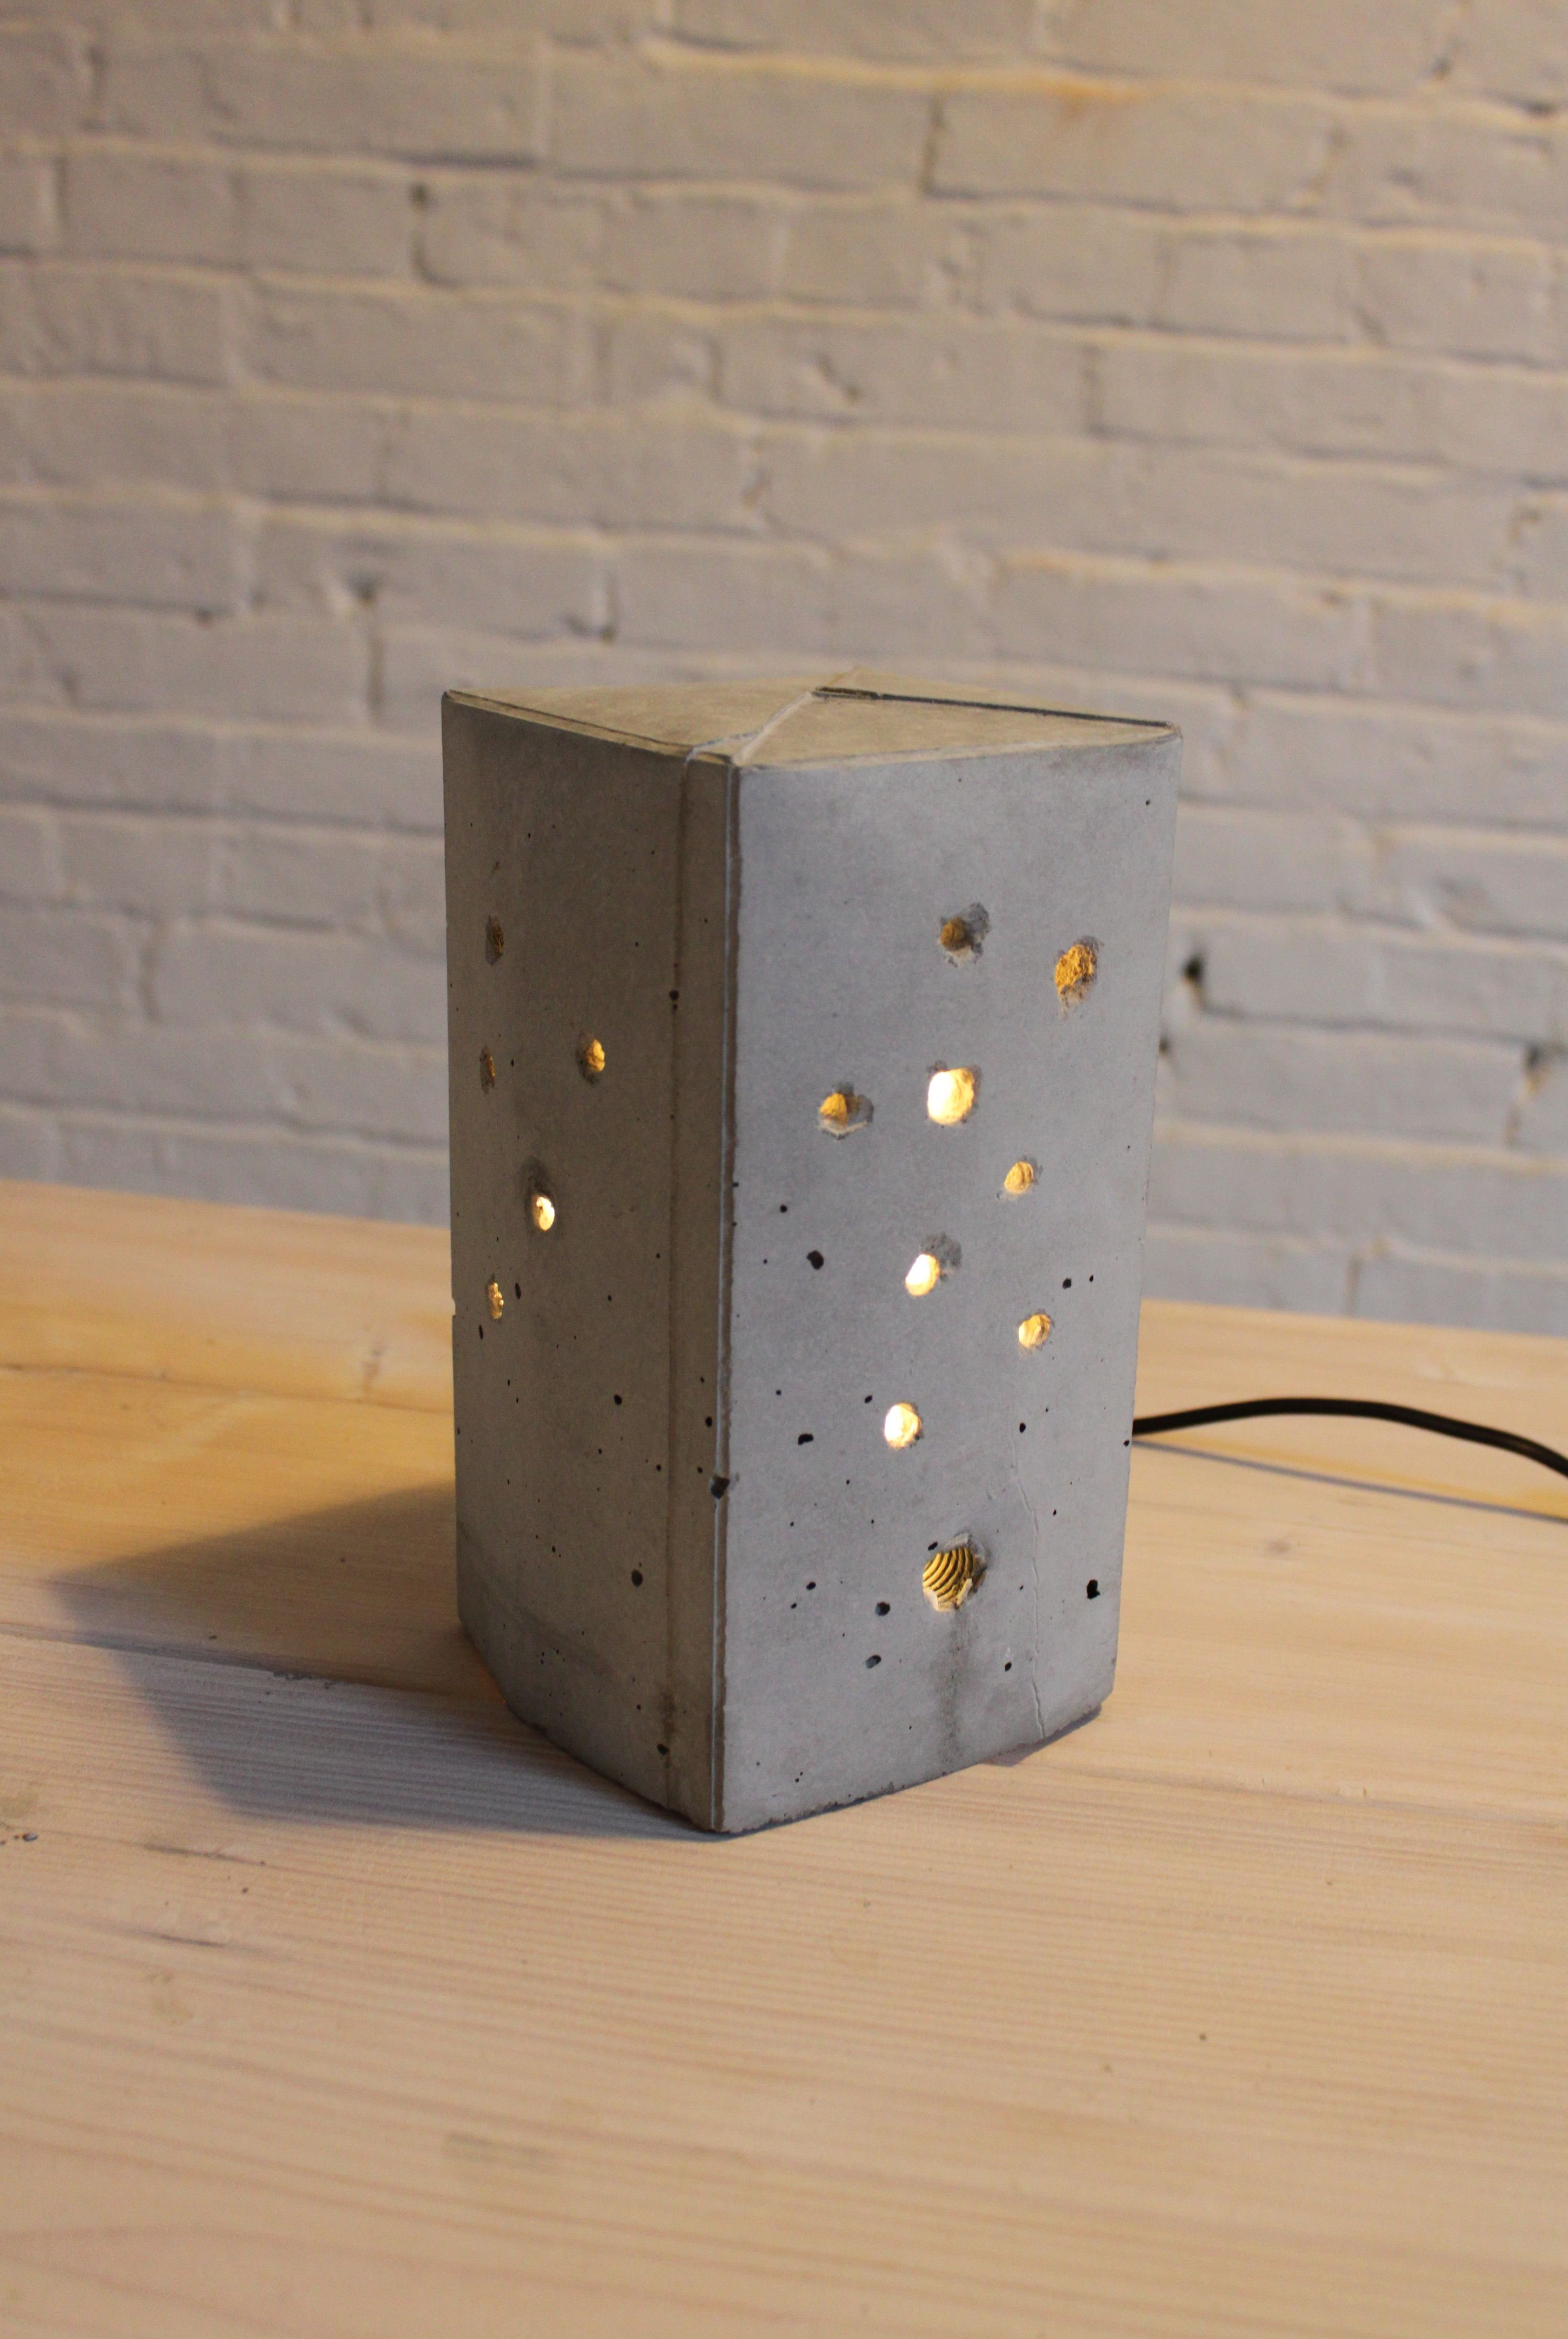 A Cute Beginner Concrete DIY Project  A Lamp Using A Milk Carton To Cast